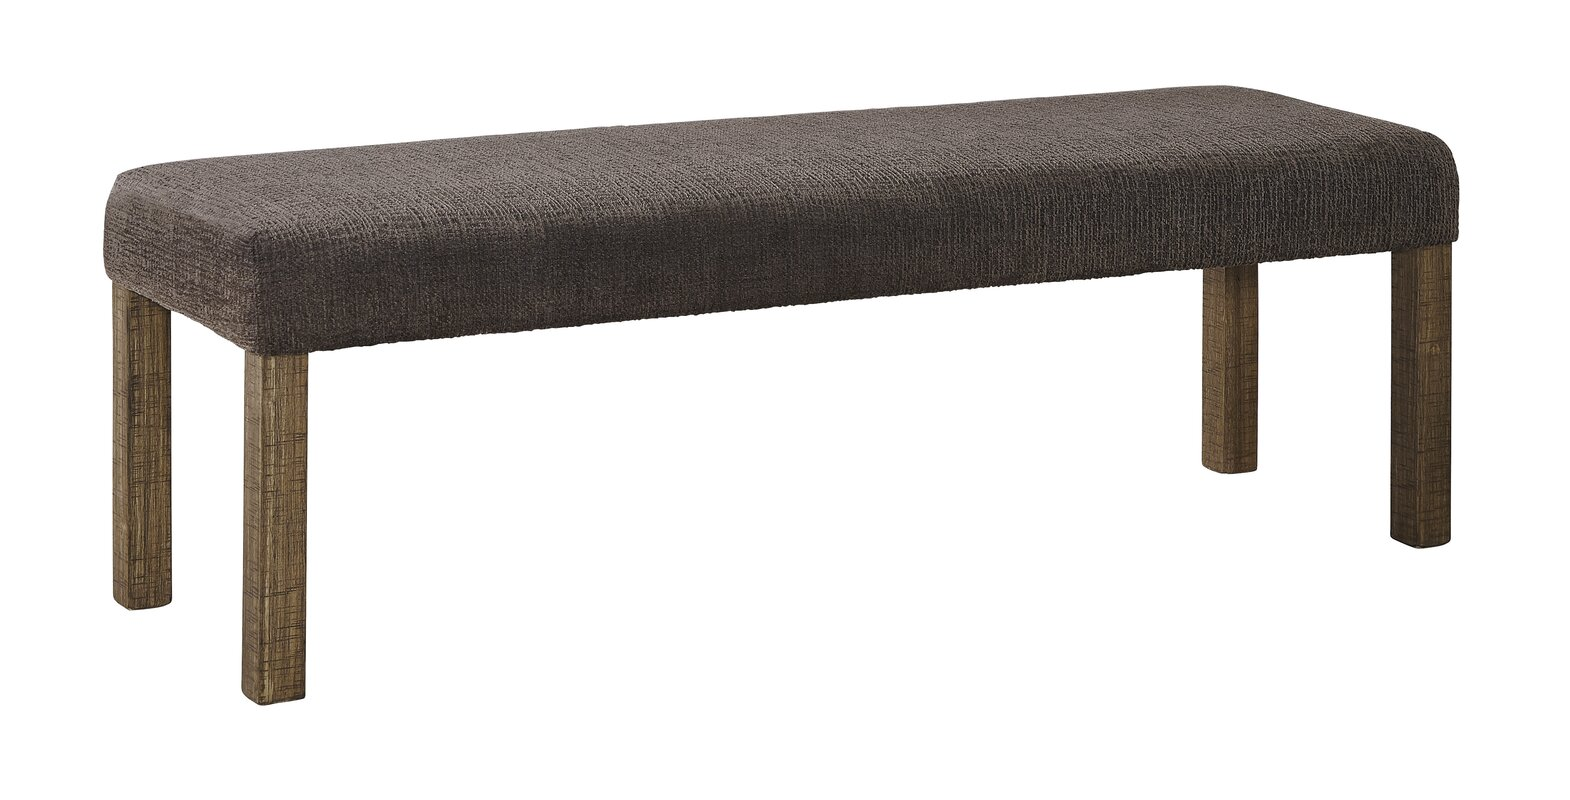 cushioned bench belham living cushioned indoor bench with  - cushioned bench